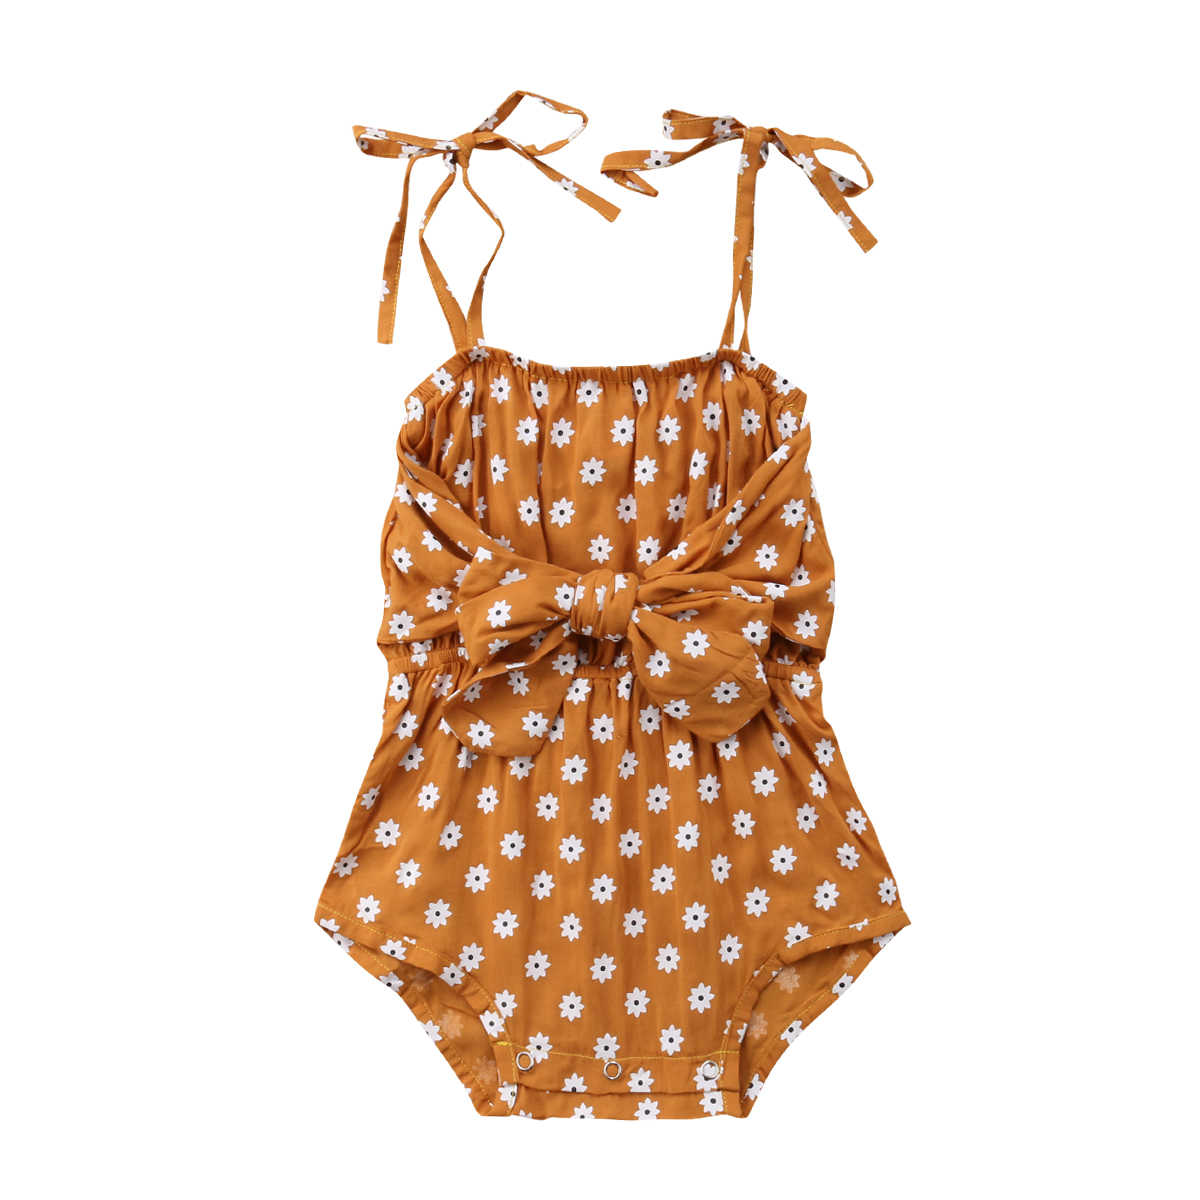 ff7236f7f Newborn Baby Girl Strap Bowknot Floral Romper Polka Dot Jumpsuit Outfits  Sunsuit